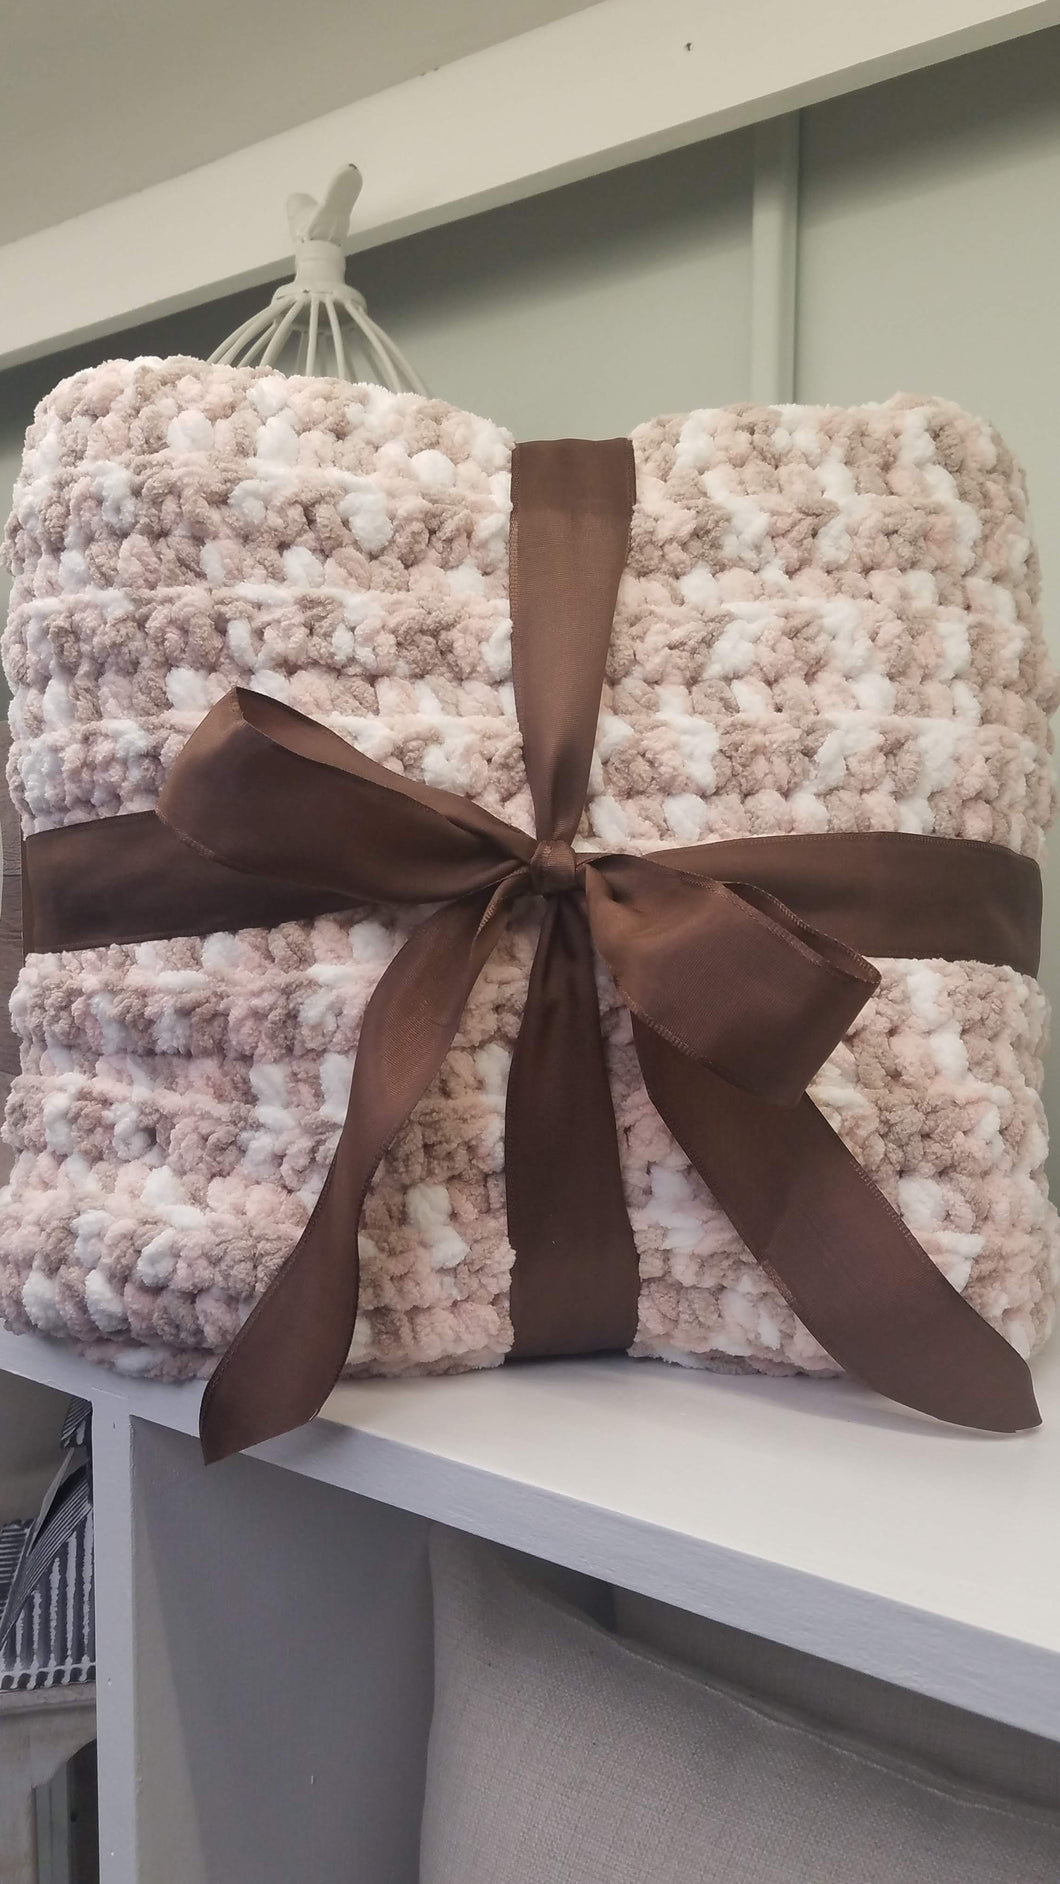 Soft & Chunky Throw - Soft Pink, Brown and White Blend